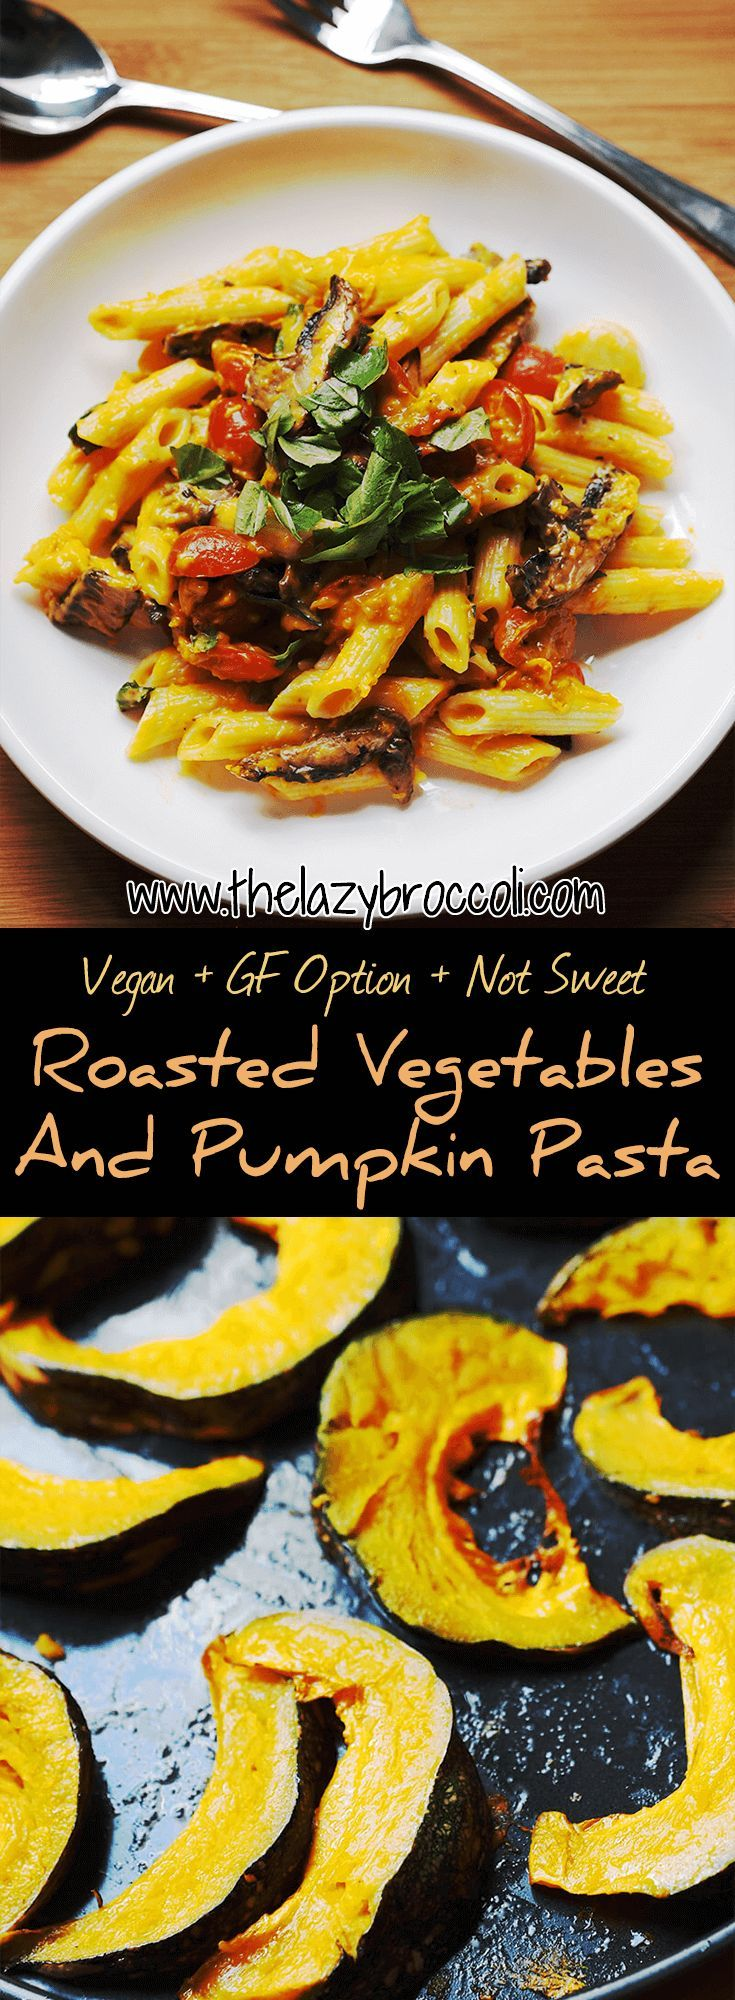 This #vegan #glutenfree #roasted #vegetables and #pumpkin #pasta is savory with just a hint of sweetness - the #garlic and #tomatoes definitely help to cut the sweetness of the pumpkin. It's sooo good, you have to try this!